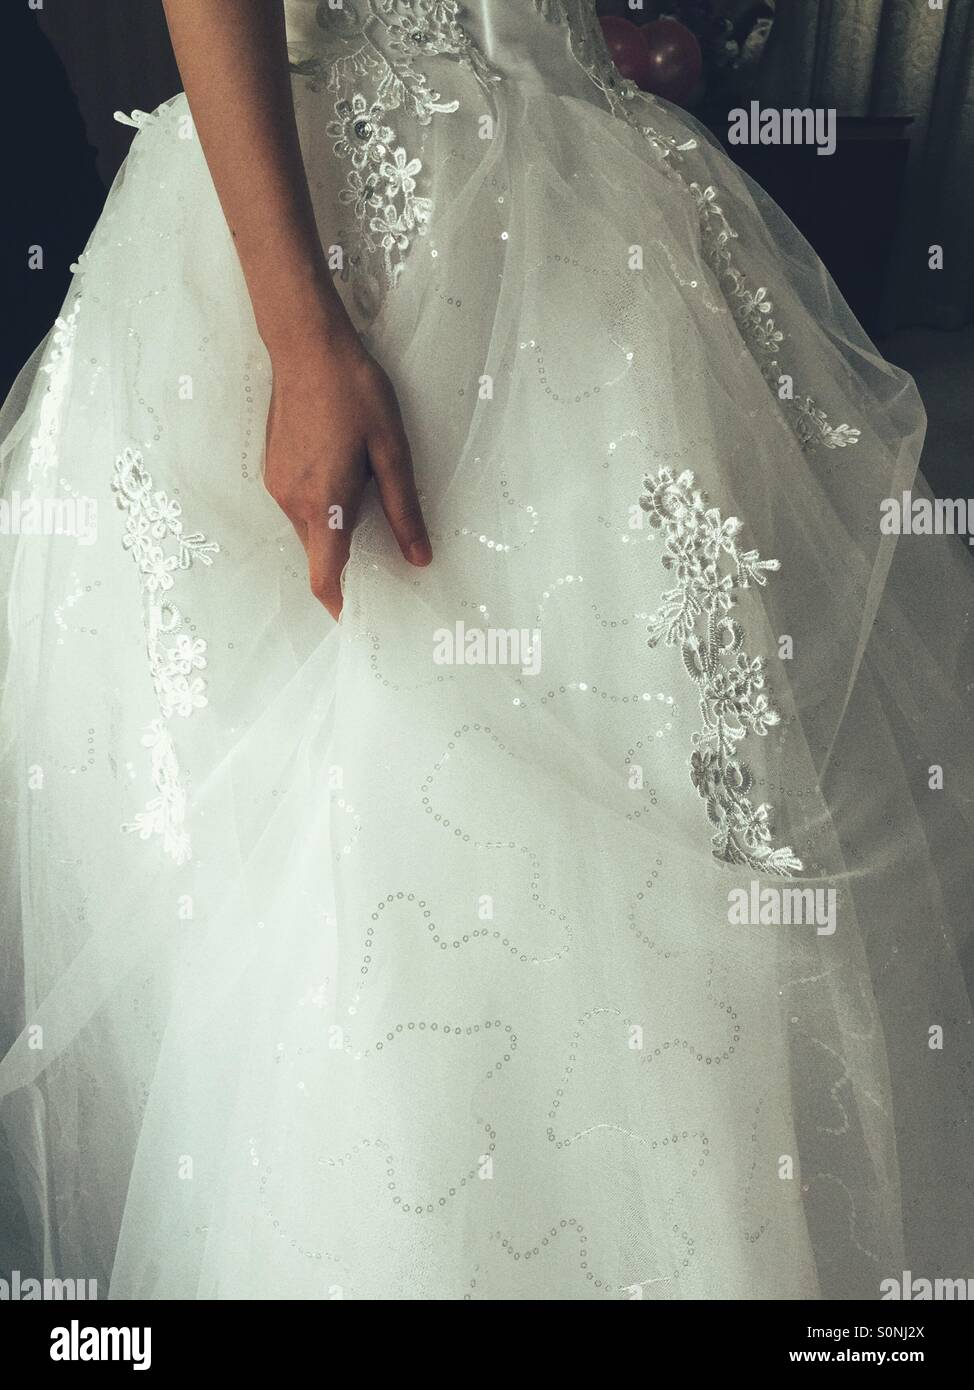 Wedding dress detail - Stock Image